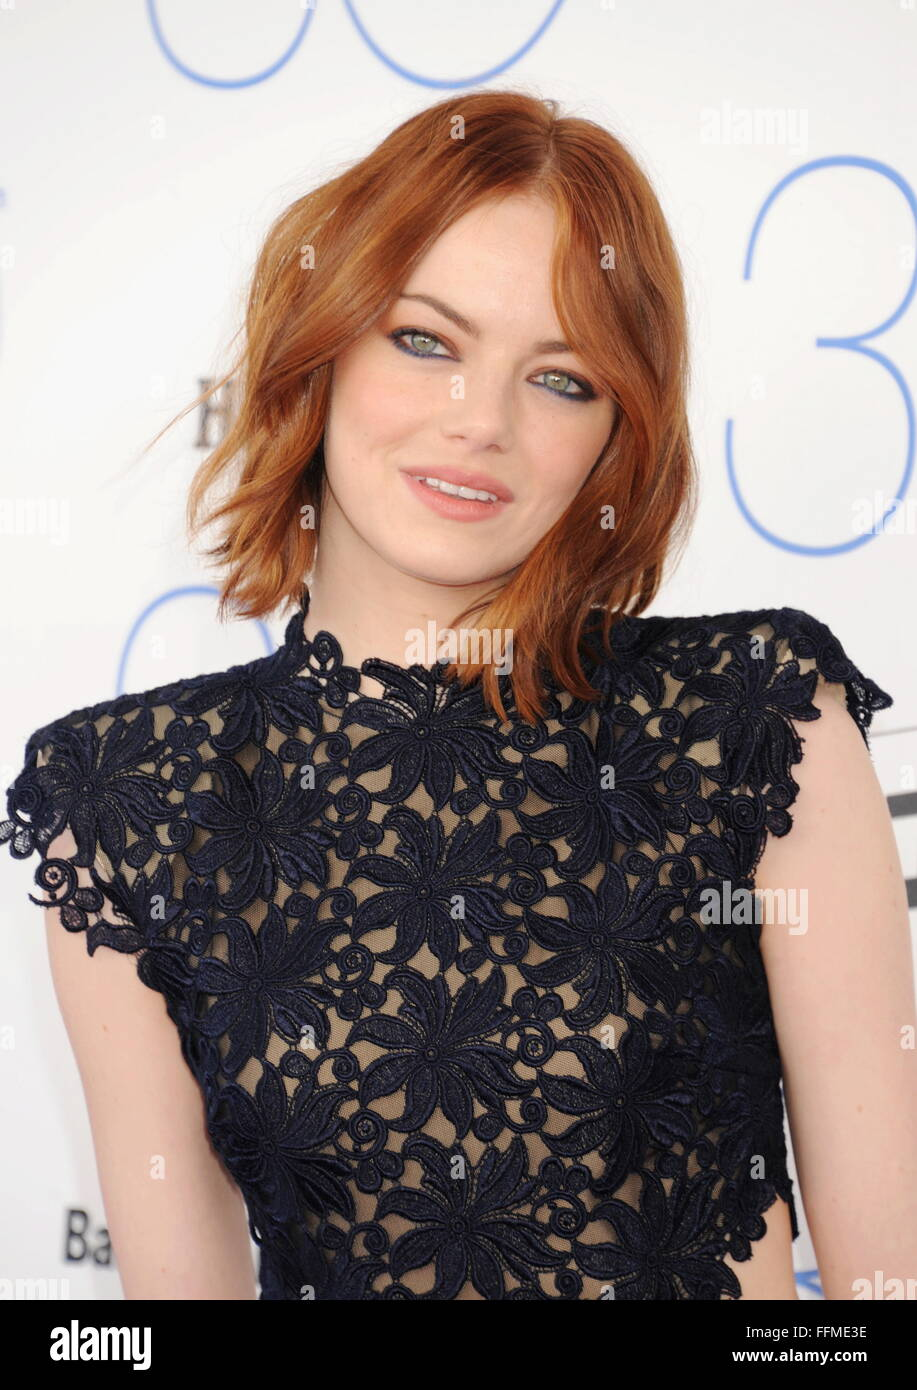 Actress Emma Stone arrives at the 2015 Film Independent Spirit Awards on February 21, 2015 in Santa Monica, California., - Stock Image